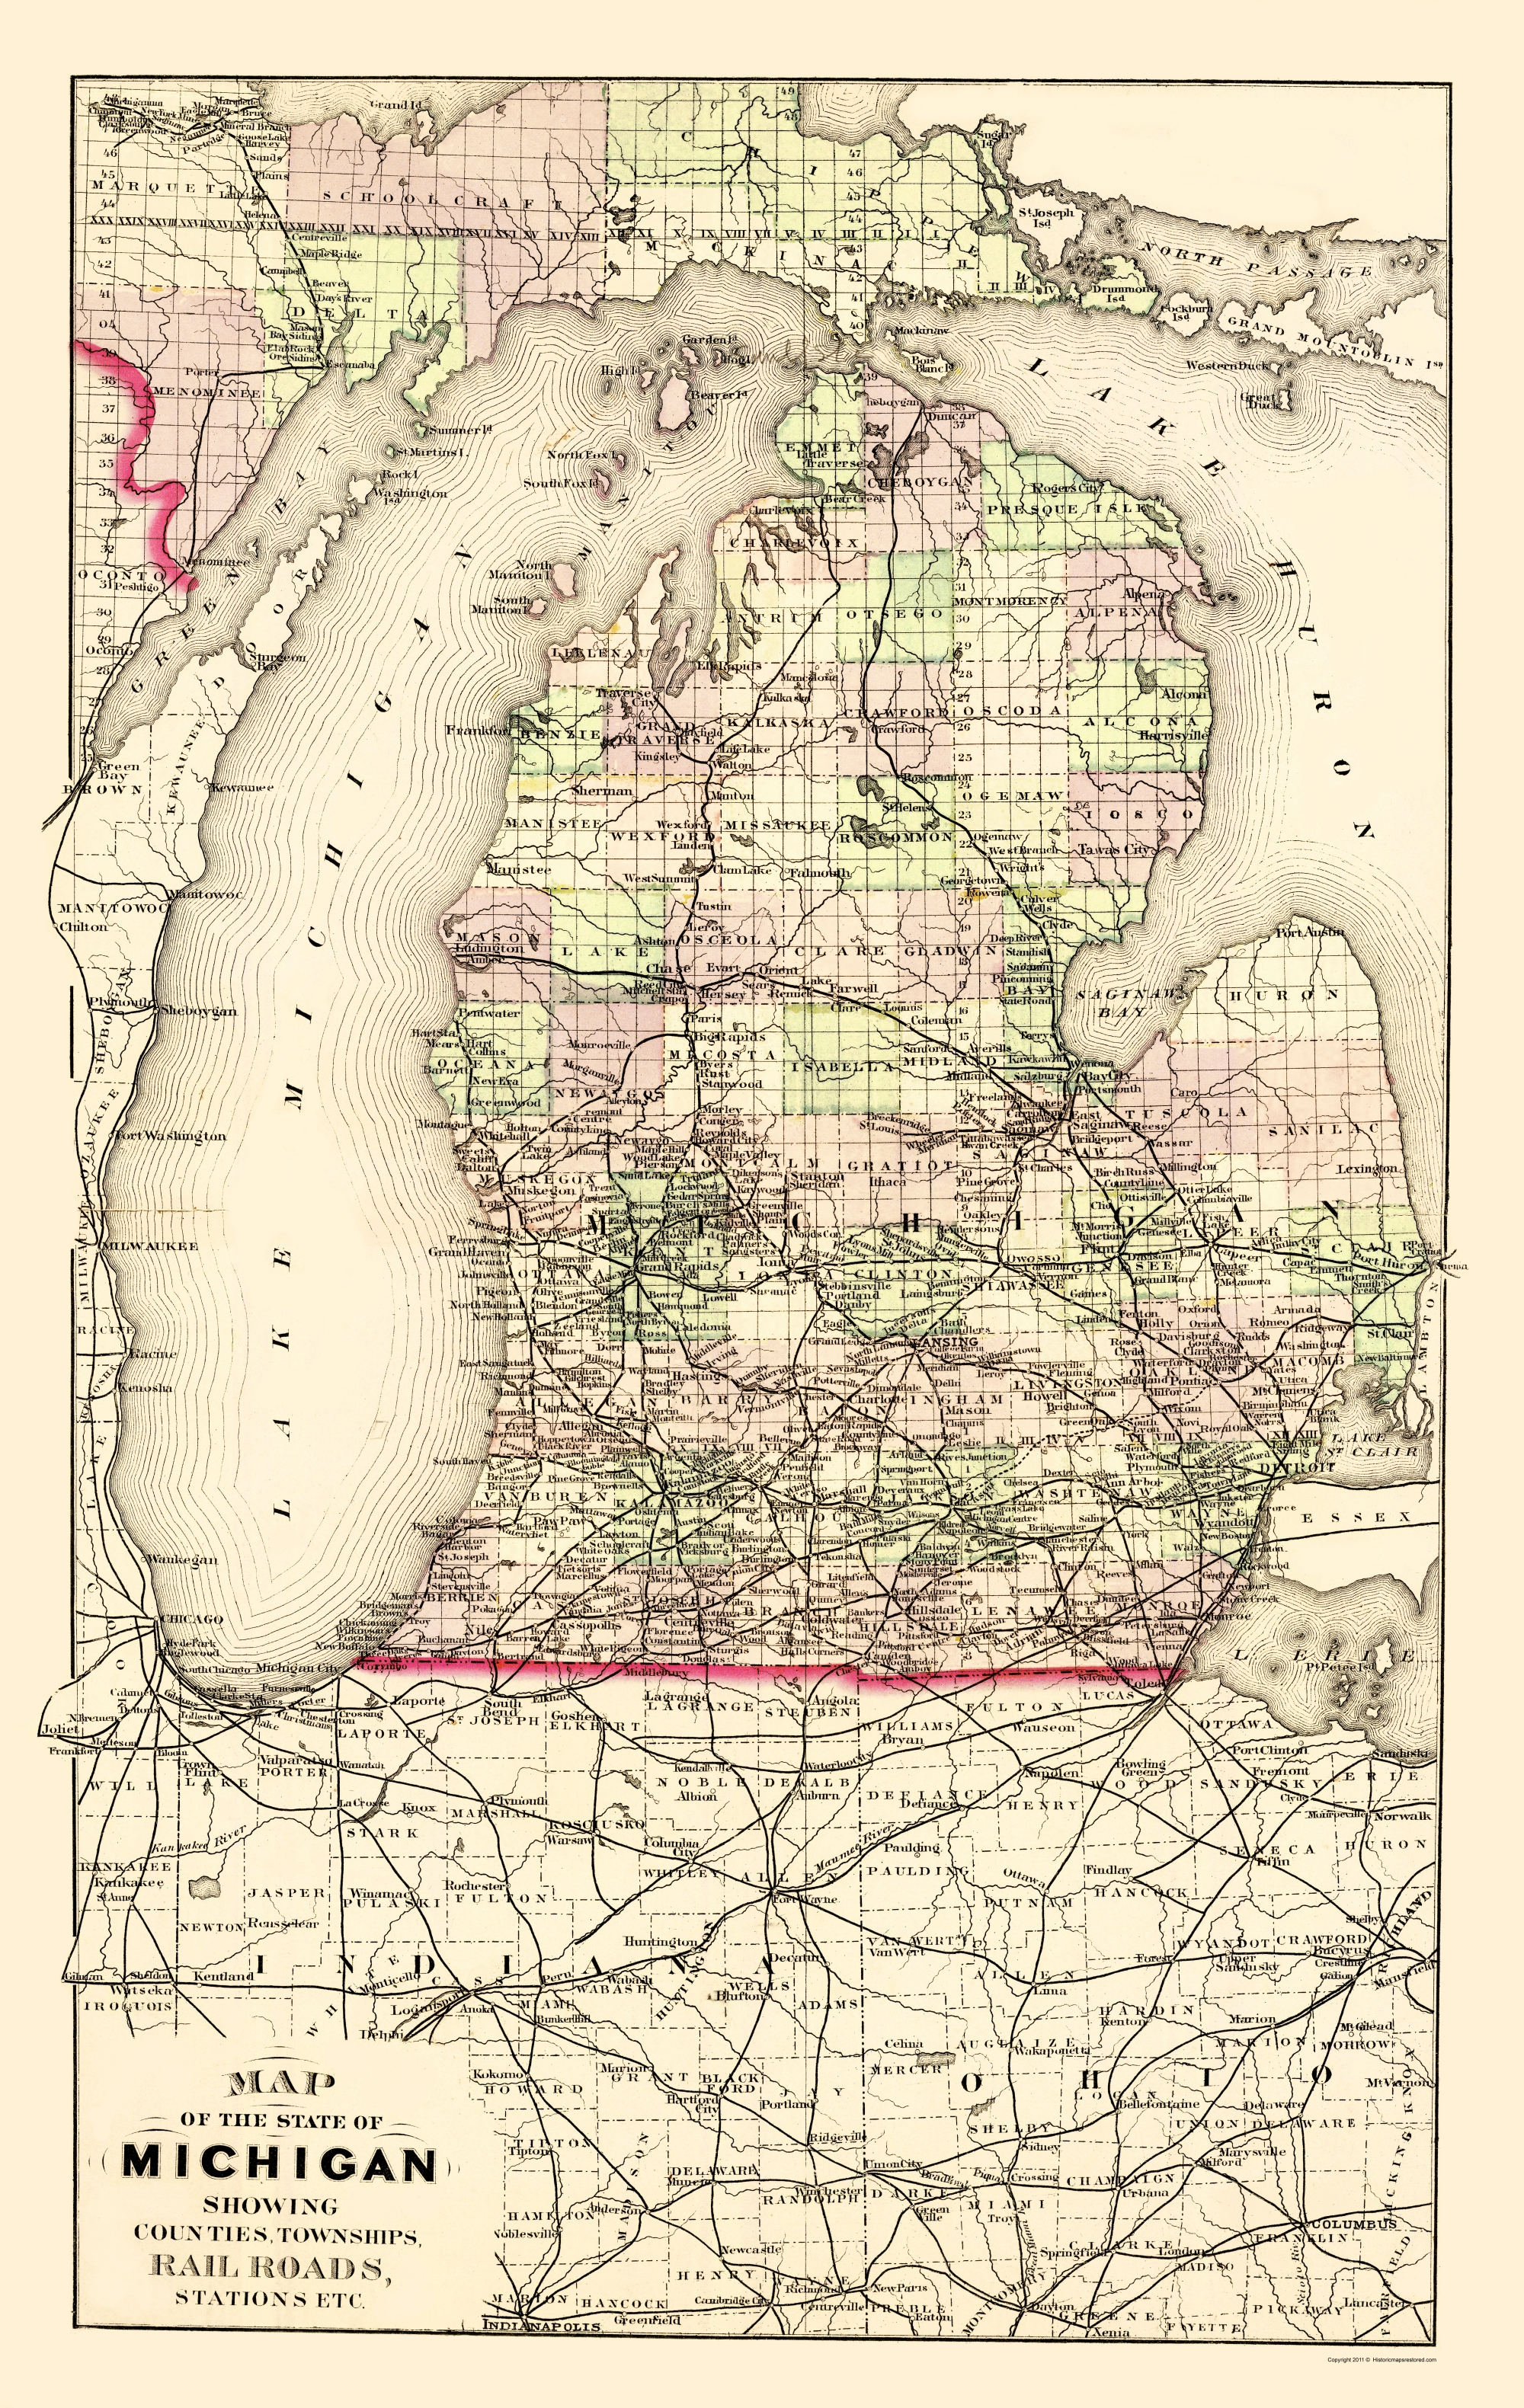 Old State Map - Michigan with Portion of Upper Peninsula 1873 - 23 on map of ishpeming michigan, st. ignace michigan, map of michigan hospitals, map of west virginia, lower peninsula of michigan, baraga michigan, map of lake michigan, iron mountain michigan, map upper michigan cities, map of upper michigan county, map of u p michigan, map of up, houghton michigan, map of michigan cities, marquette michigan, large map of michigan, map of ironwood michigan, map of canada and michigan, map of upper michigan casinos, porcupine mountains michigan,